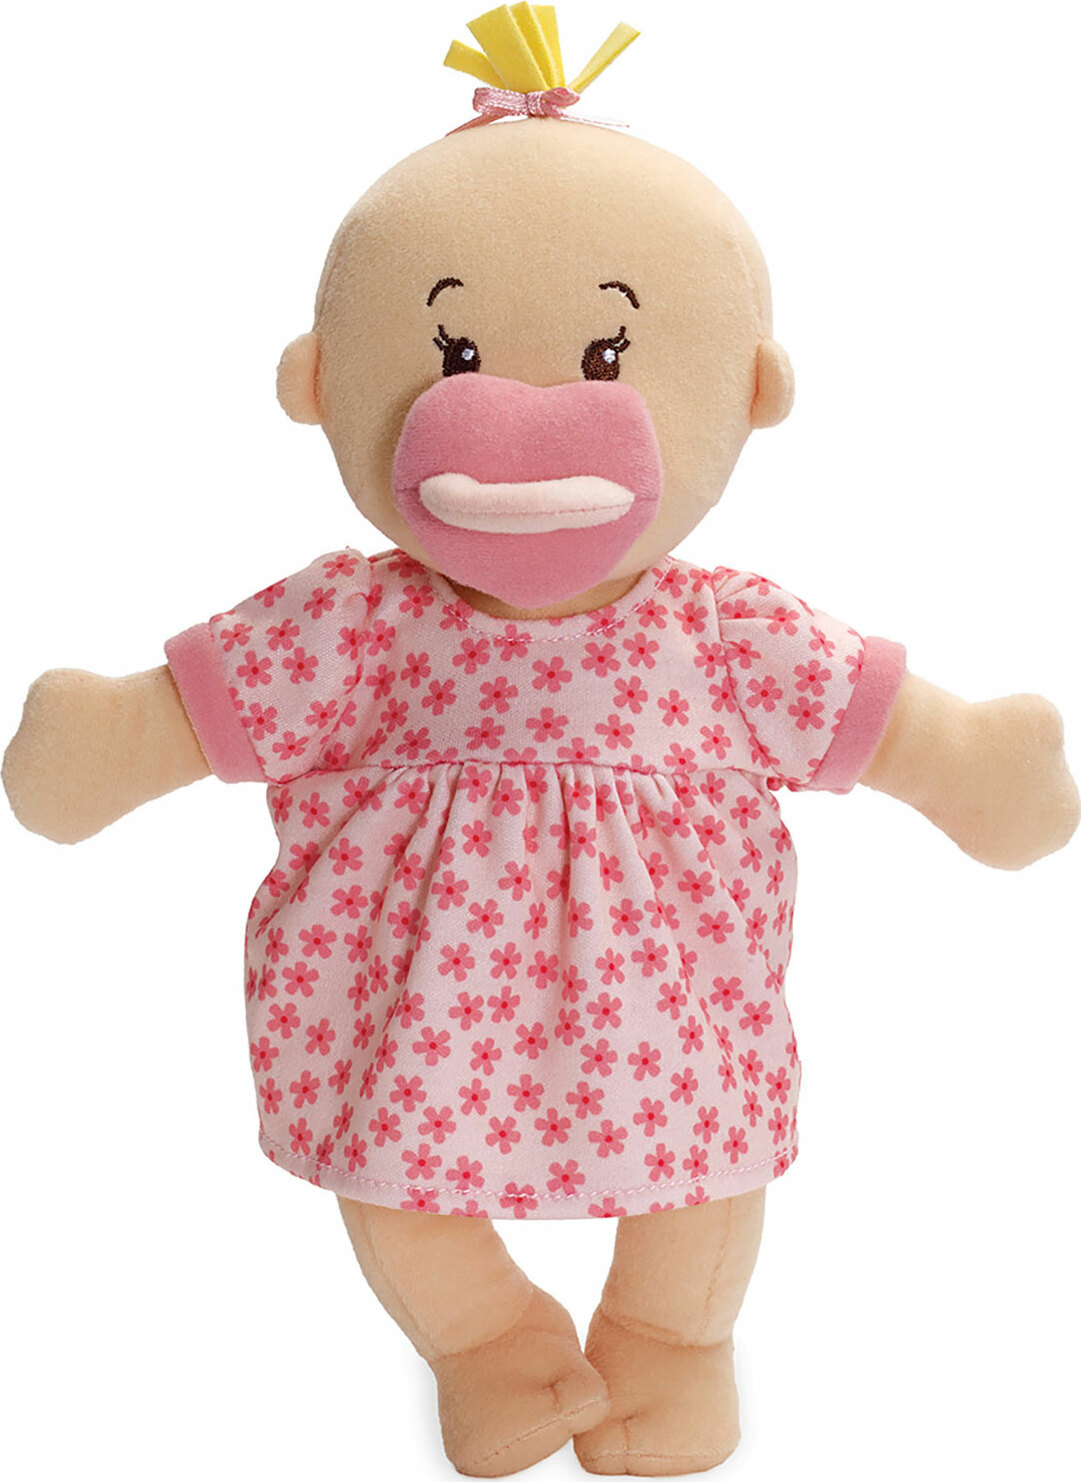 Wee Baby Stella Doll Peach Kidoodles Toy Zone